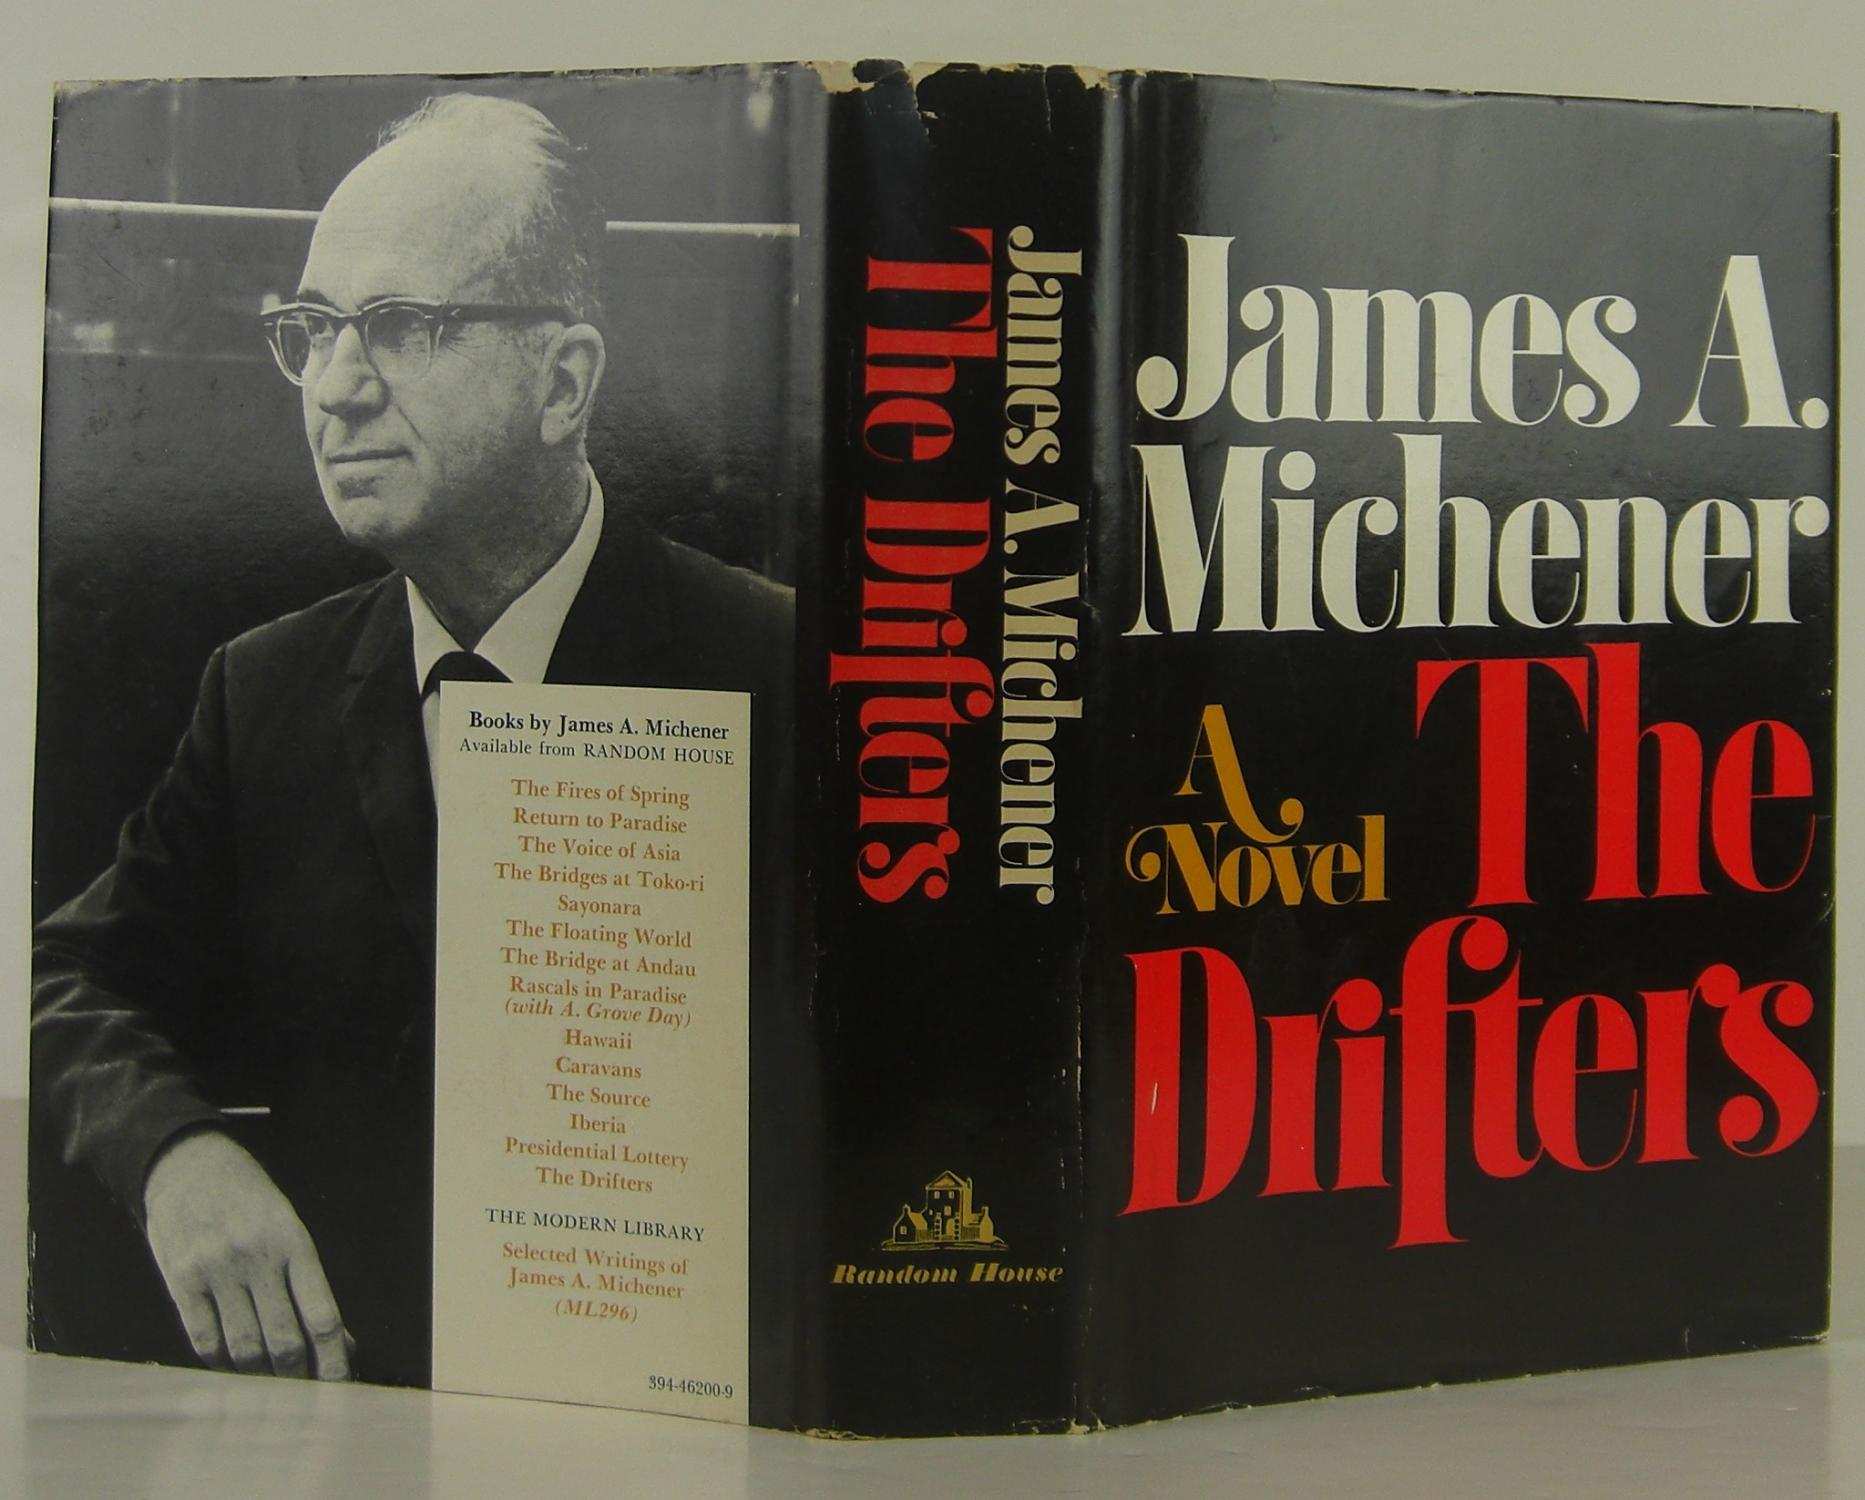 a life and works of james a michener Books by james a michener, the source,  the quality of life by james a michener 7 editions  selected works by james a michener 1 edition.